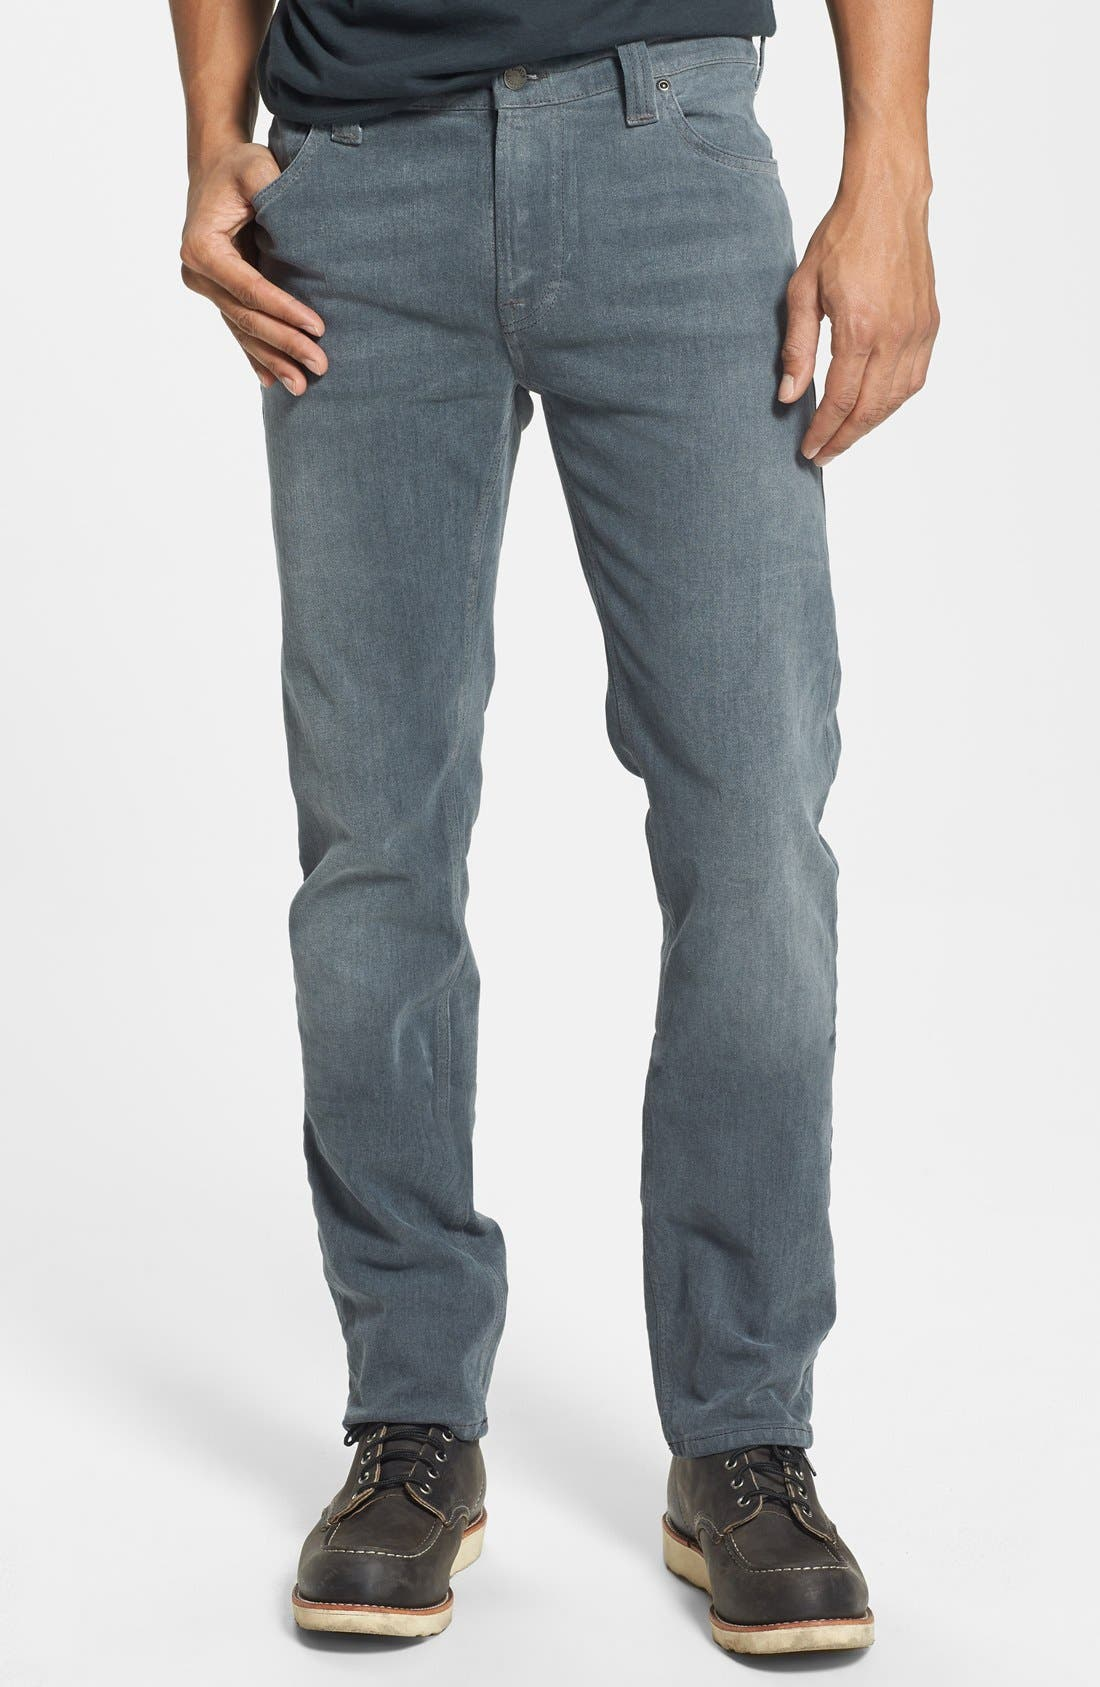 Main Image - Nudie Jeans 'Thin Finn' Skinny Fit Jeans (Organic Lighter Shade)